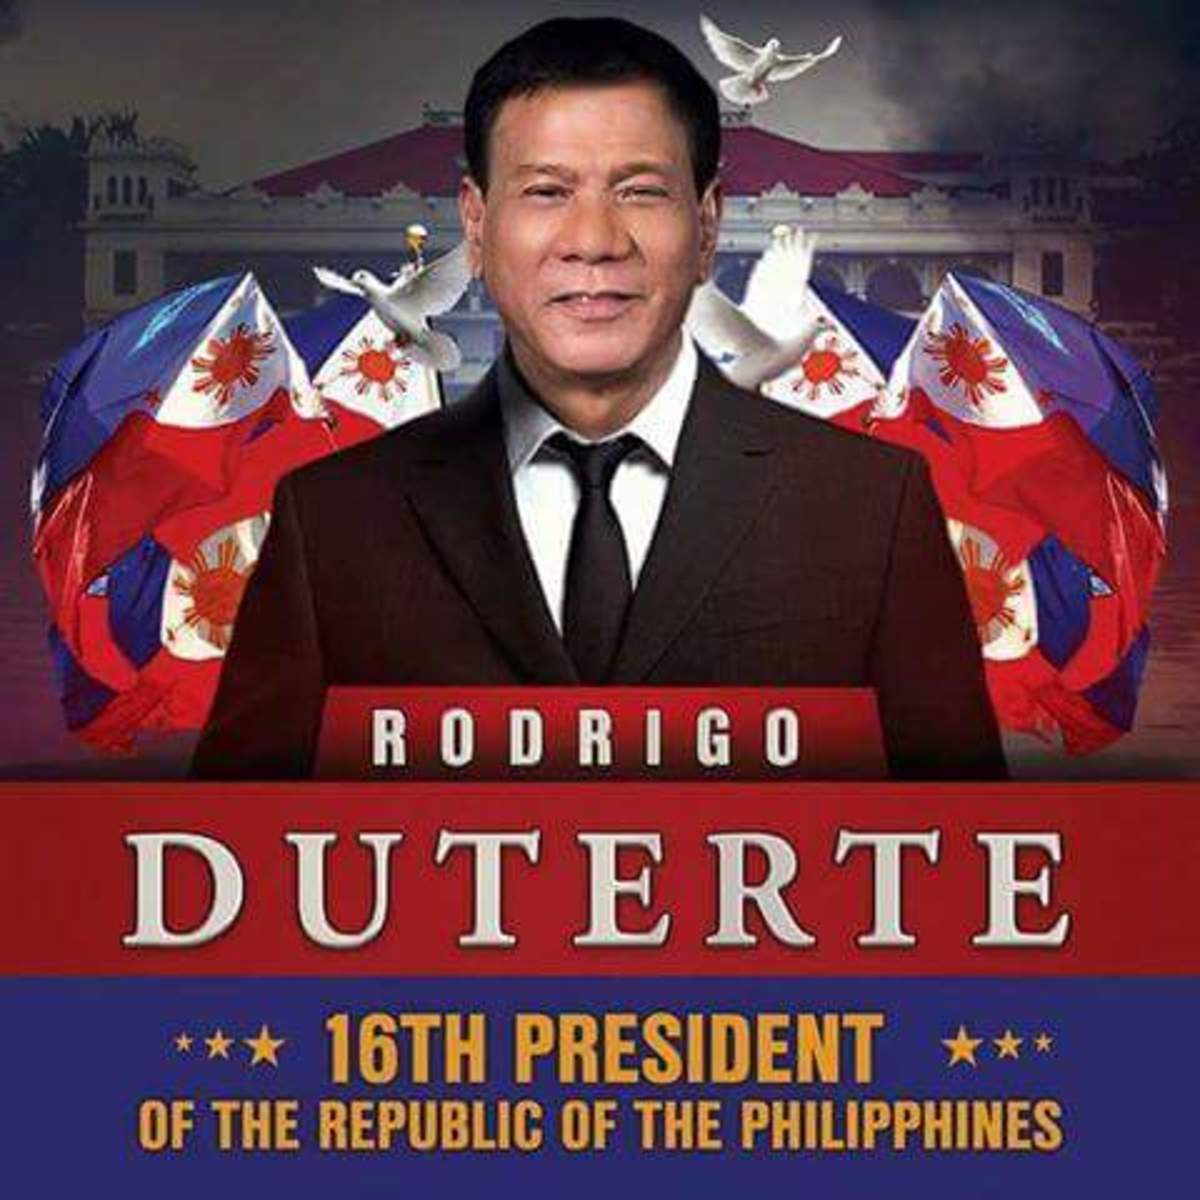 Rodrigo Duterte has just taken his oath the 16th President of the Republic of the Philippines.